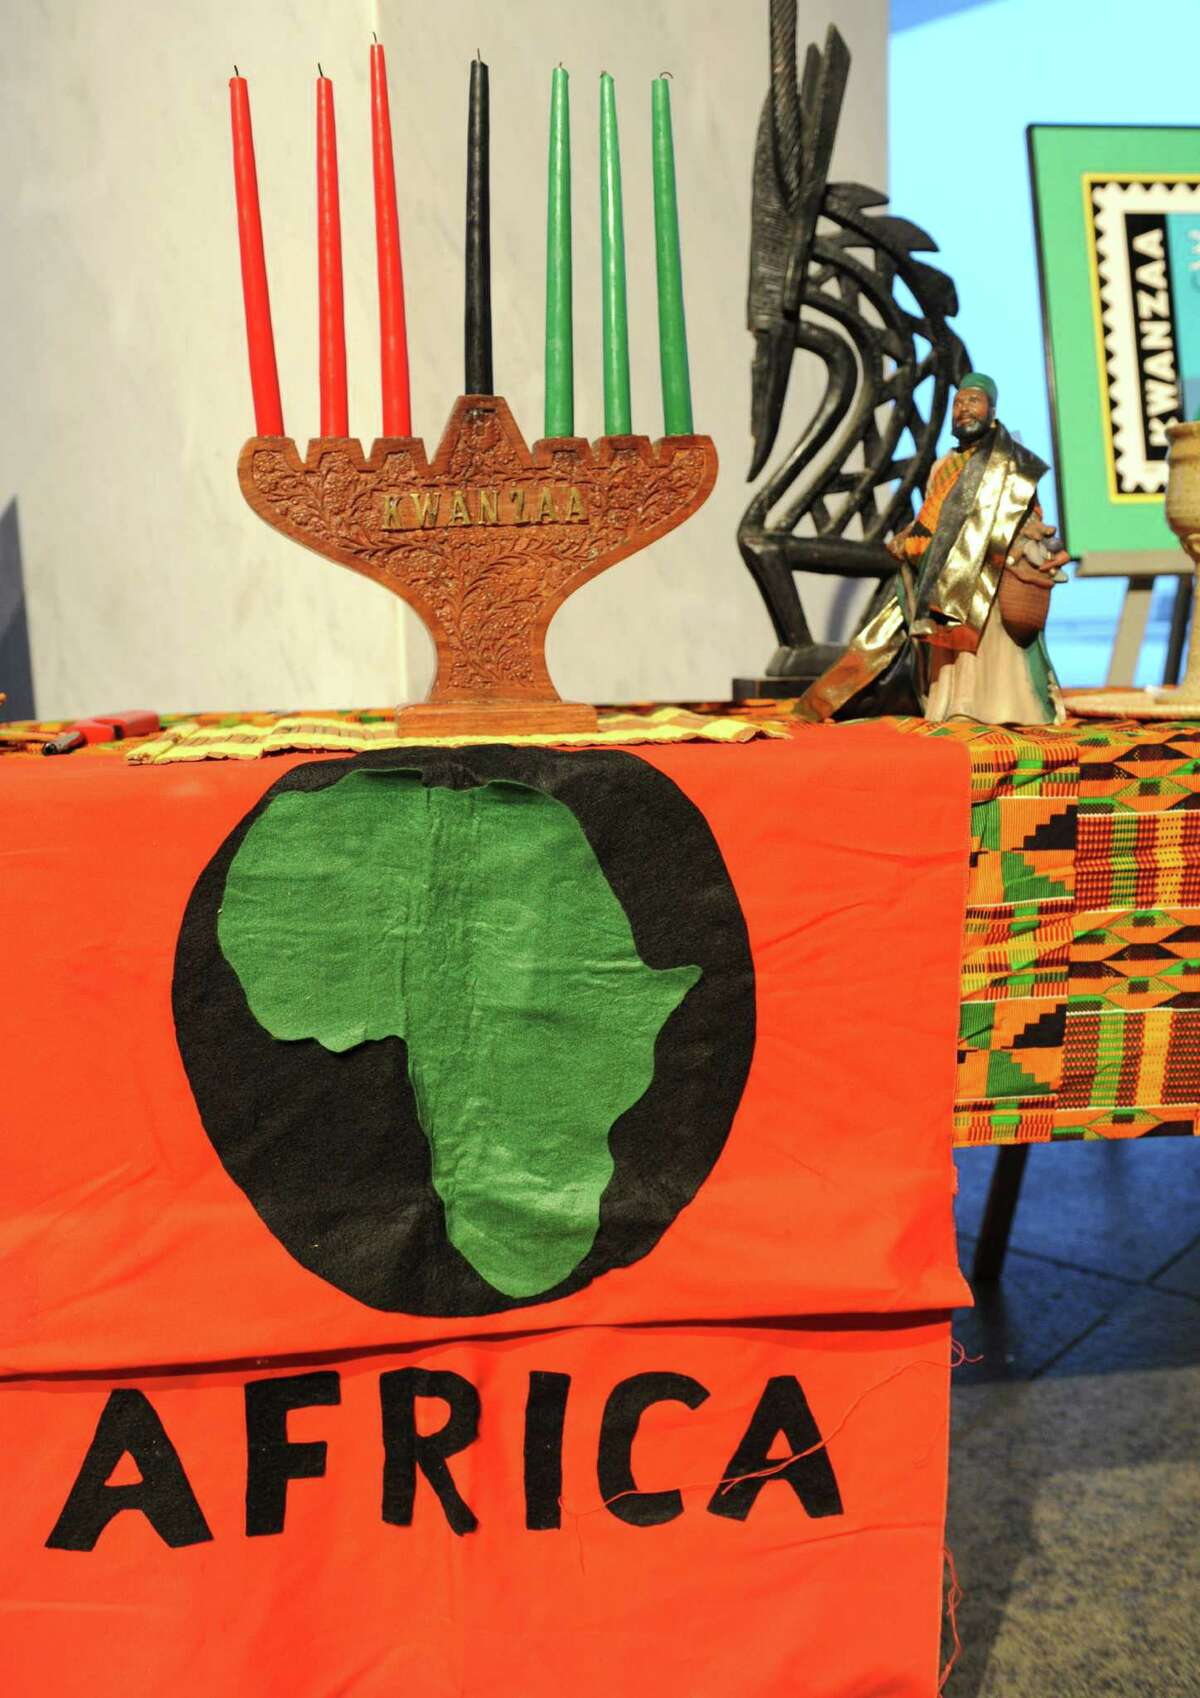 A table displays Kwanzaa items such as this kinara that has seven candles for the seven days of Kwanzaa at the Annual Capital Kwanzaa event at the New York State Museum on Thursday Dec. 27, 2012 in Albany, N.Y. (Lori Van Buren / Times Union)